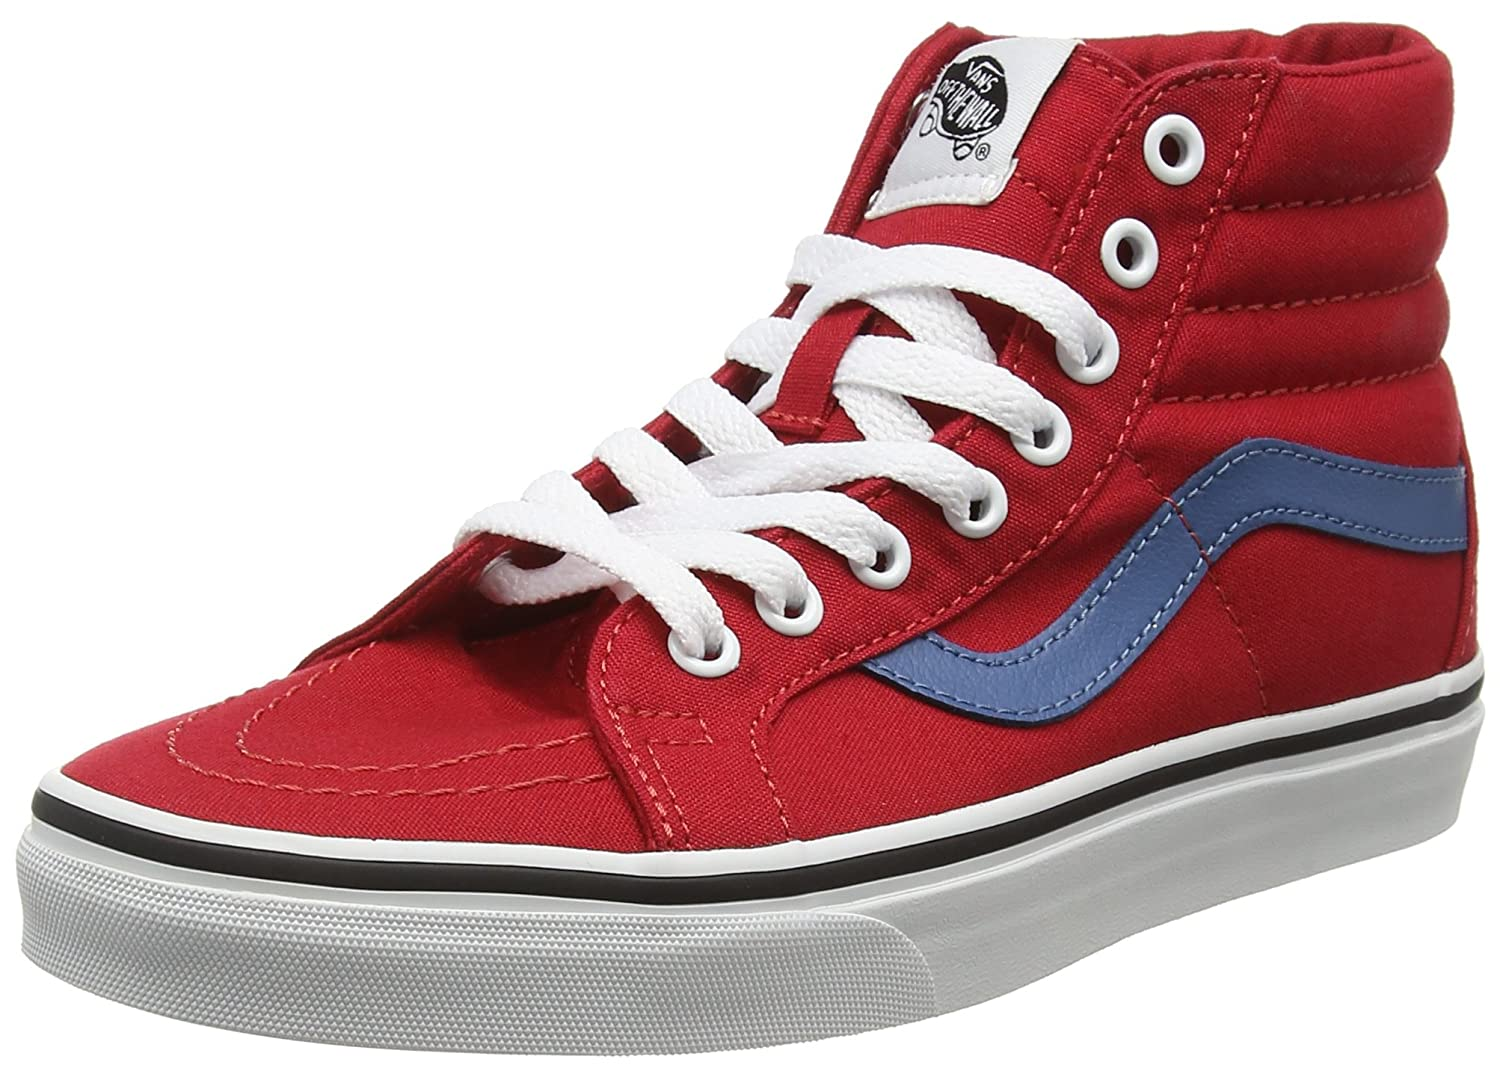 5559cd0d094 Vans Unisex Sk8-Hi Slim Women s Skate Shoe B019KWJID8 14.5 B(M) B(M) B(M) US  Women   13 D(M) US Men